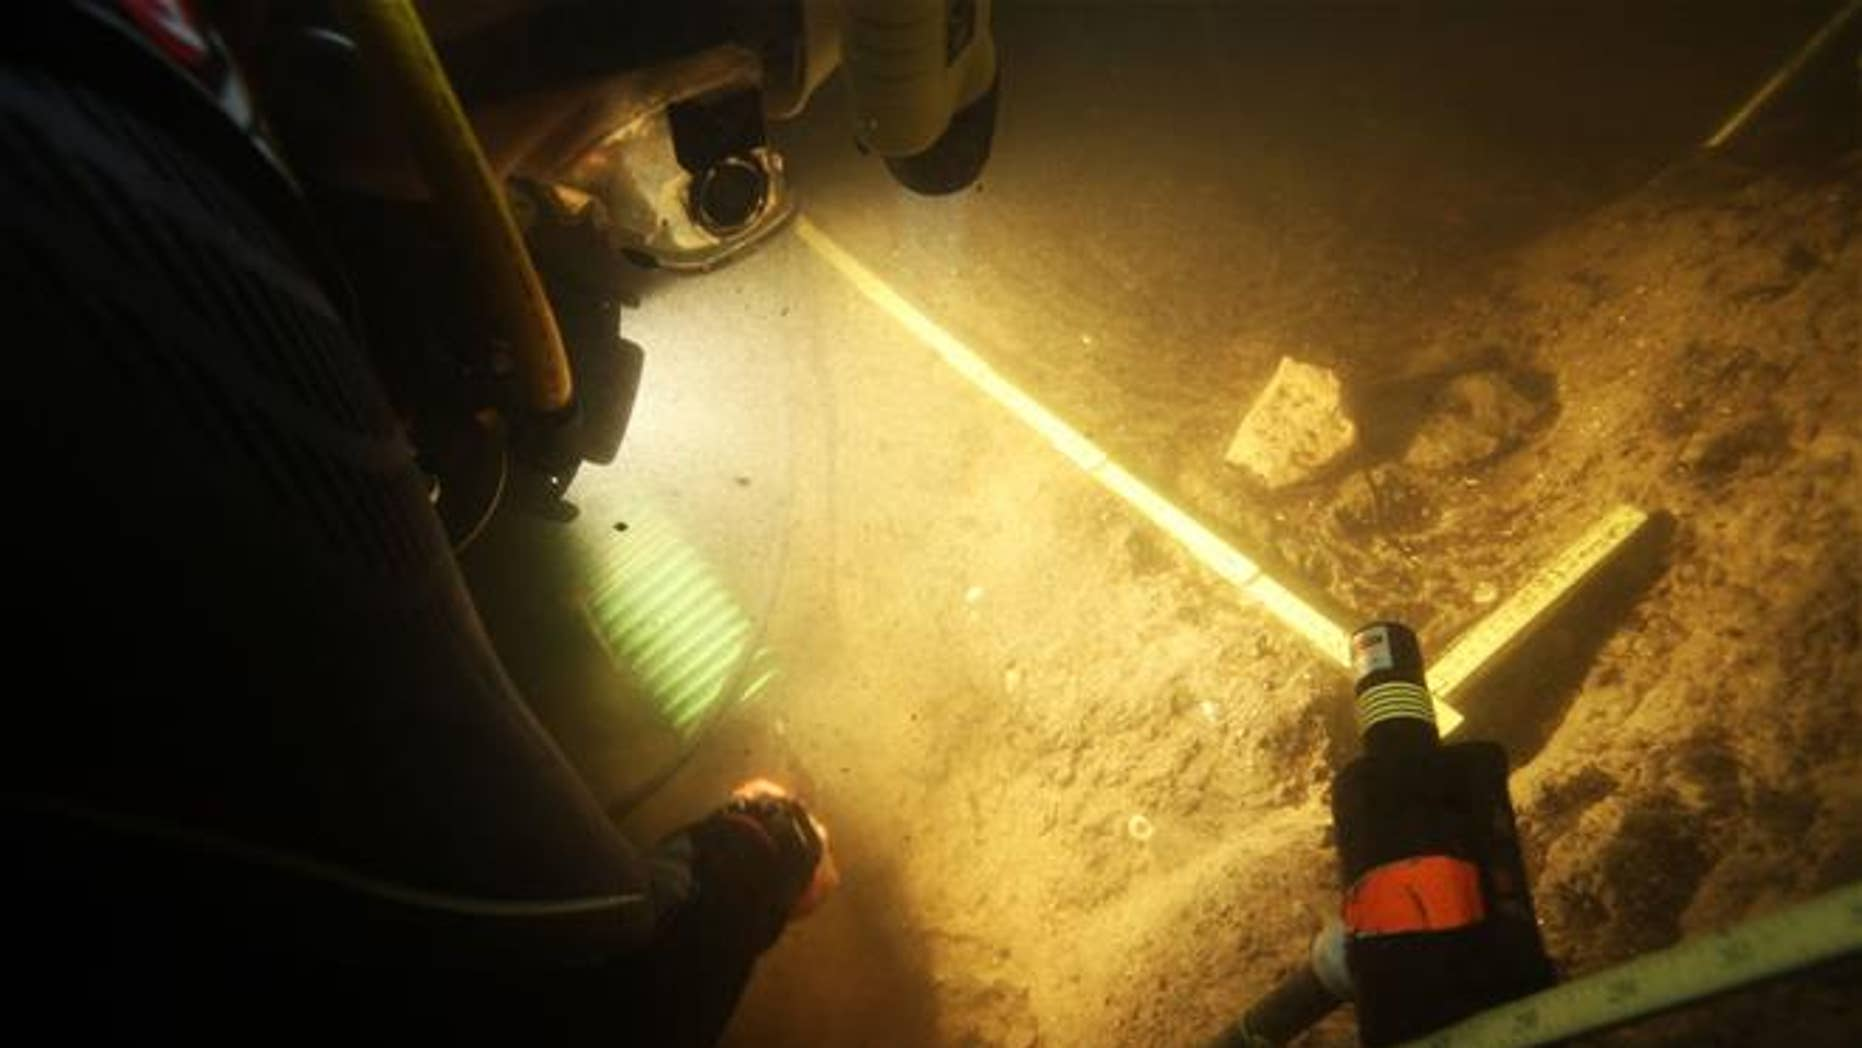 In this 2015 photo provided by Texas A&M's Center for the Study of the First Americans, divers investigate the Page-Ladson archaeological site in Florida.